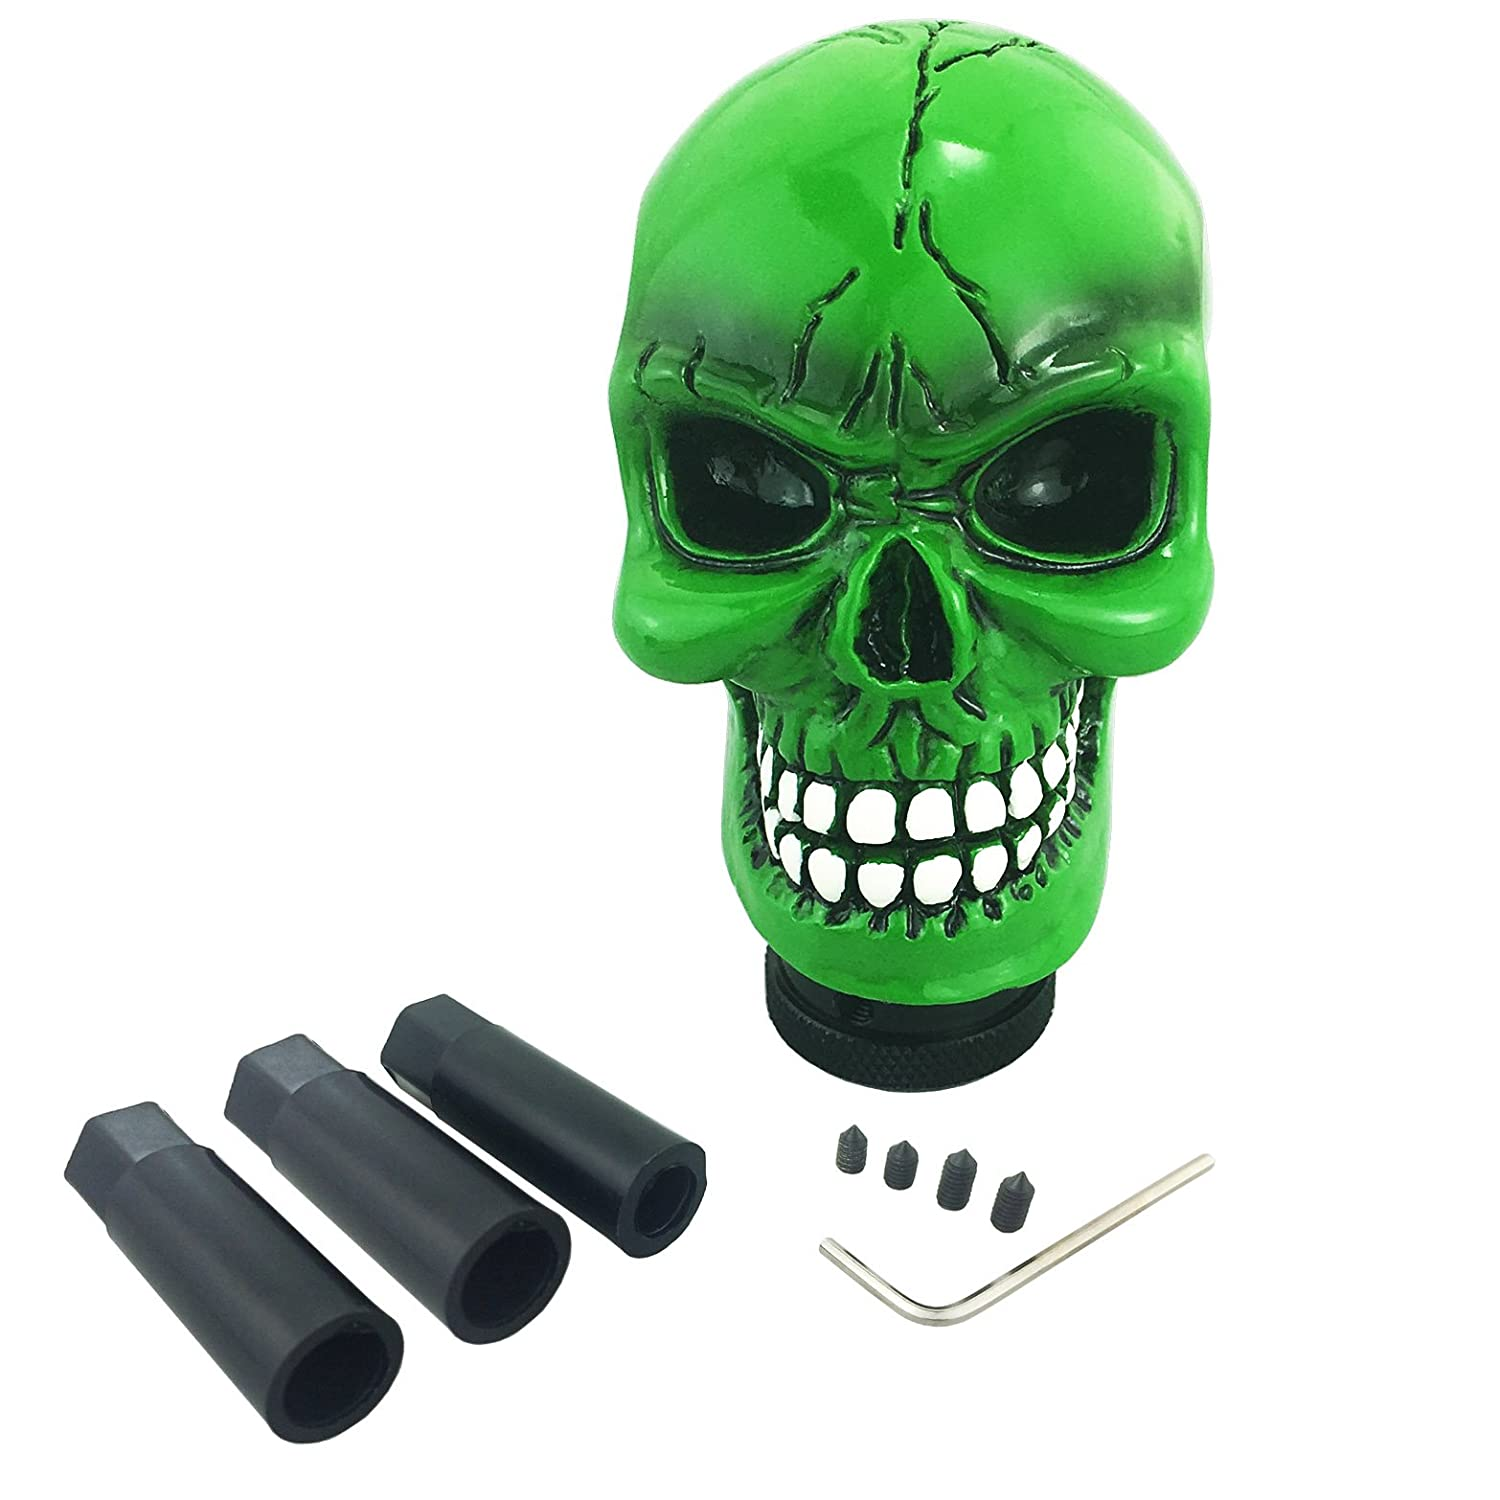 Arenbel Auto Shift Knob Skull Gear Stick Shifting Lever Shifter of Cool Style fit Universal Manual Automatic Cars Black